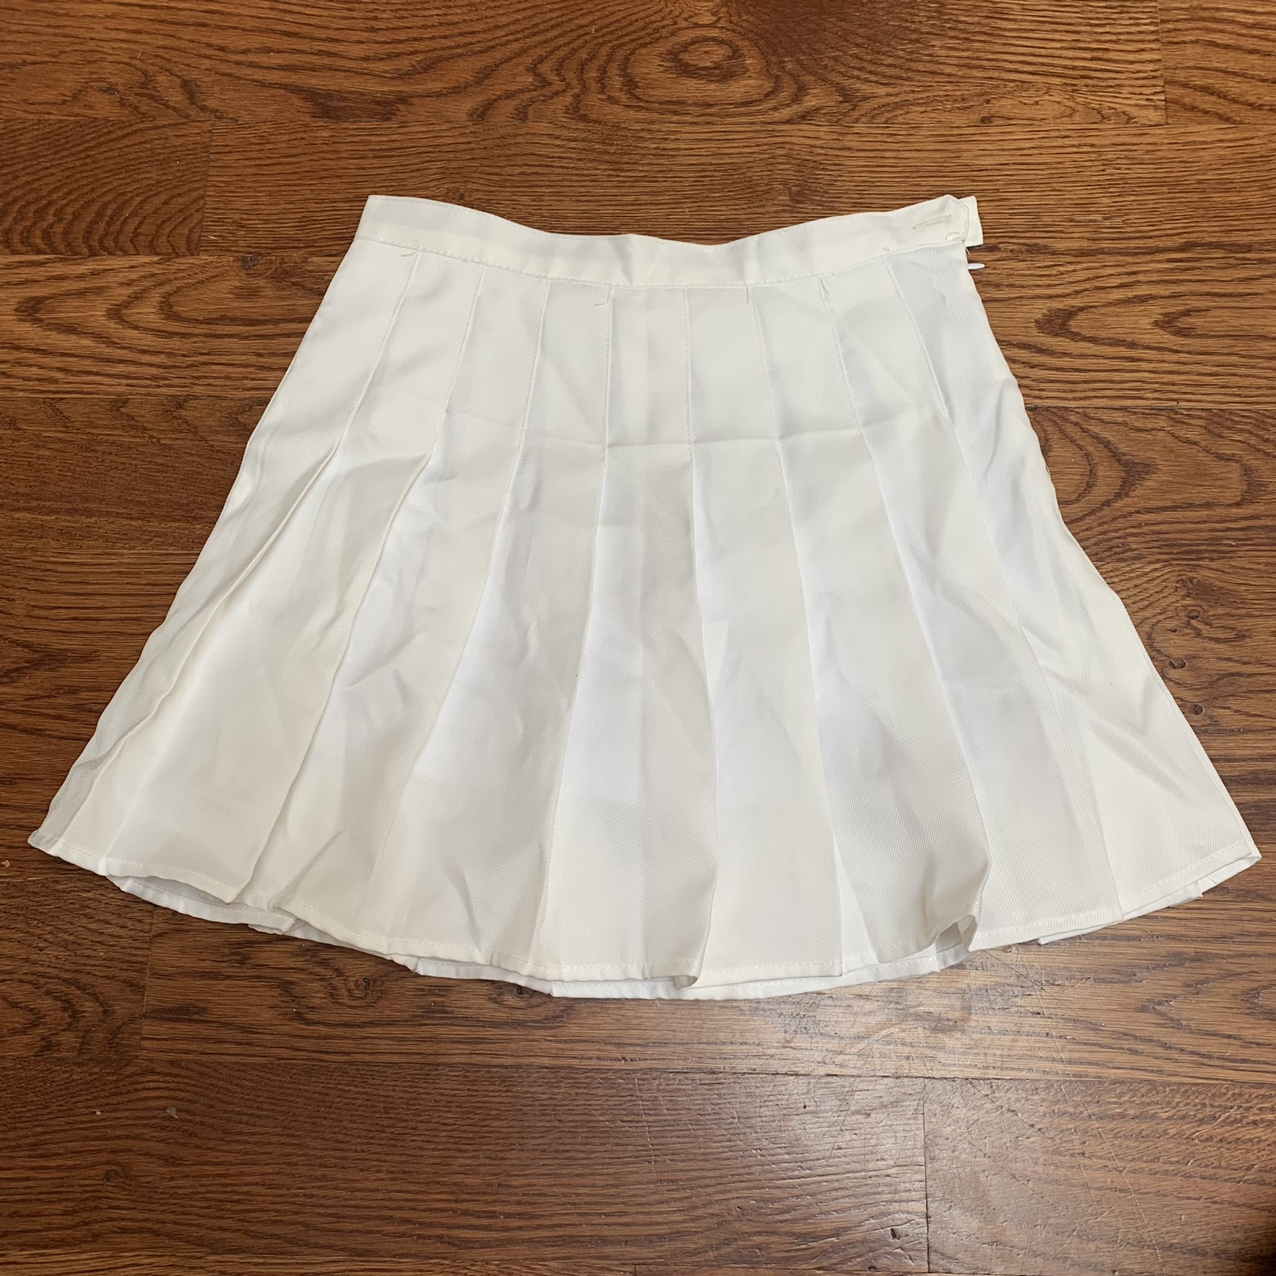 Product Image 1 - -super cute white tennis skirt -never